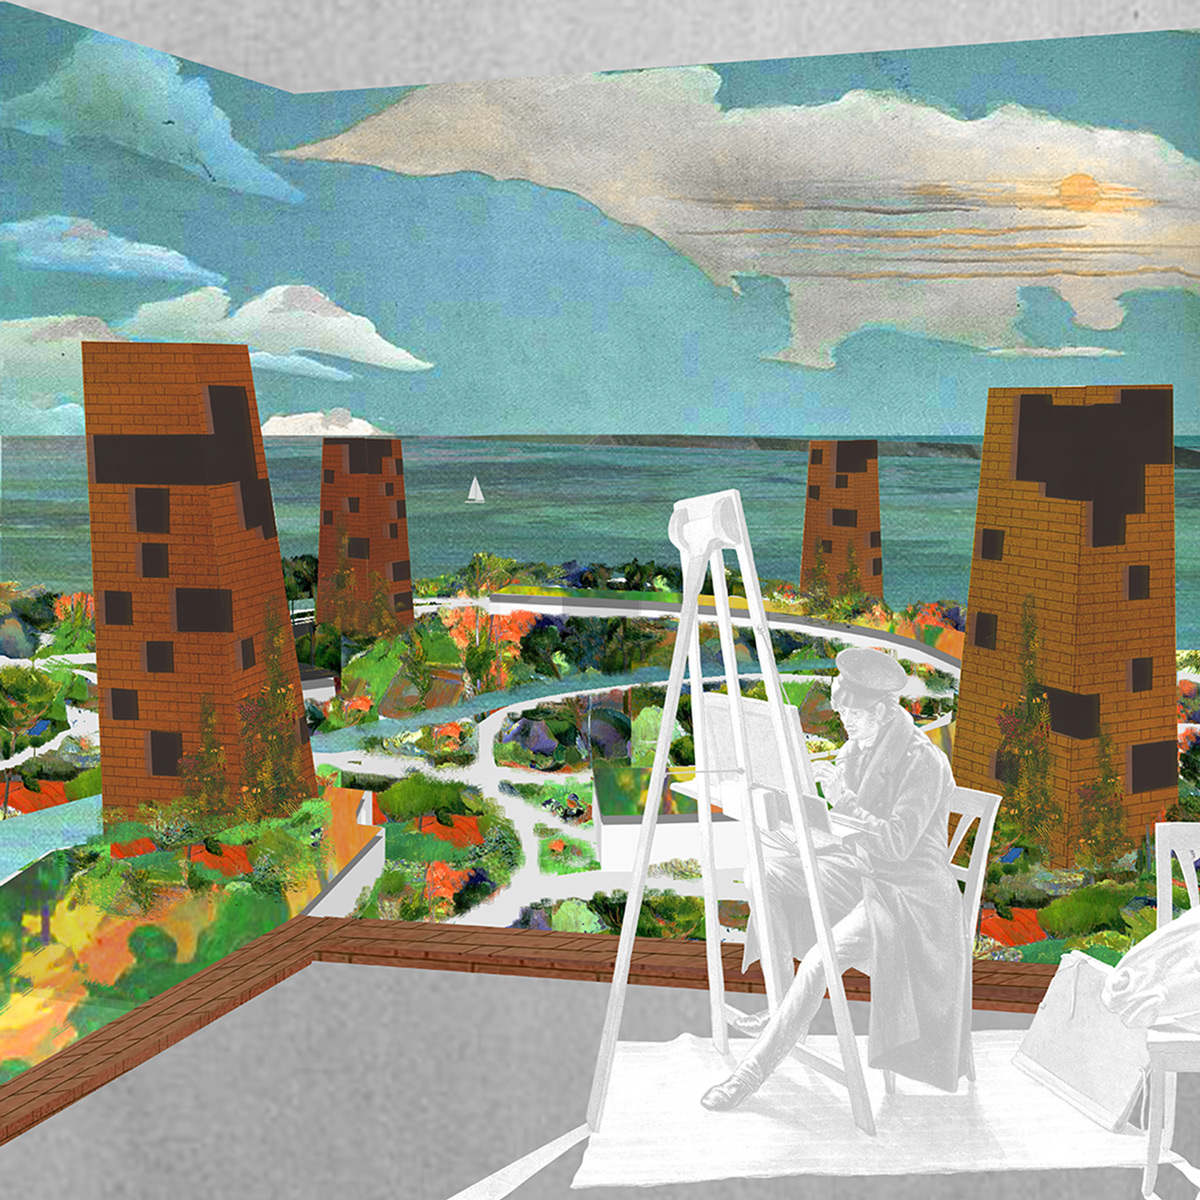 Collage concept from one of the possible art studio spaces observing the landscape of UI and the urban quality of the towers